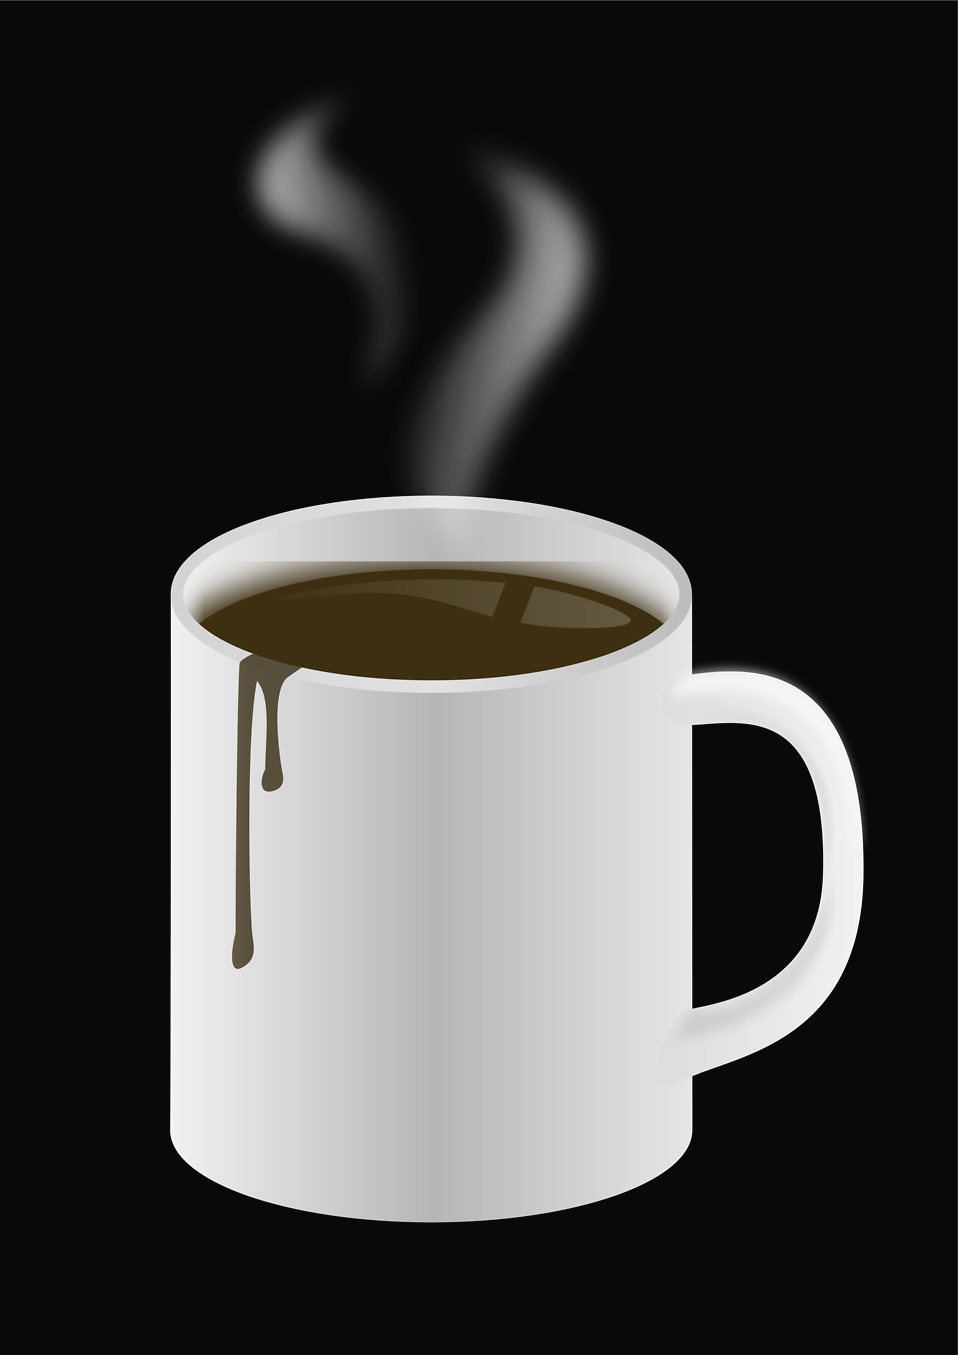 Illustration of a hot cup of coffee : Free Stock Photo